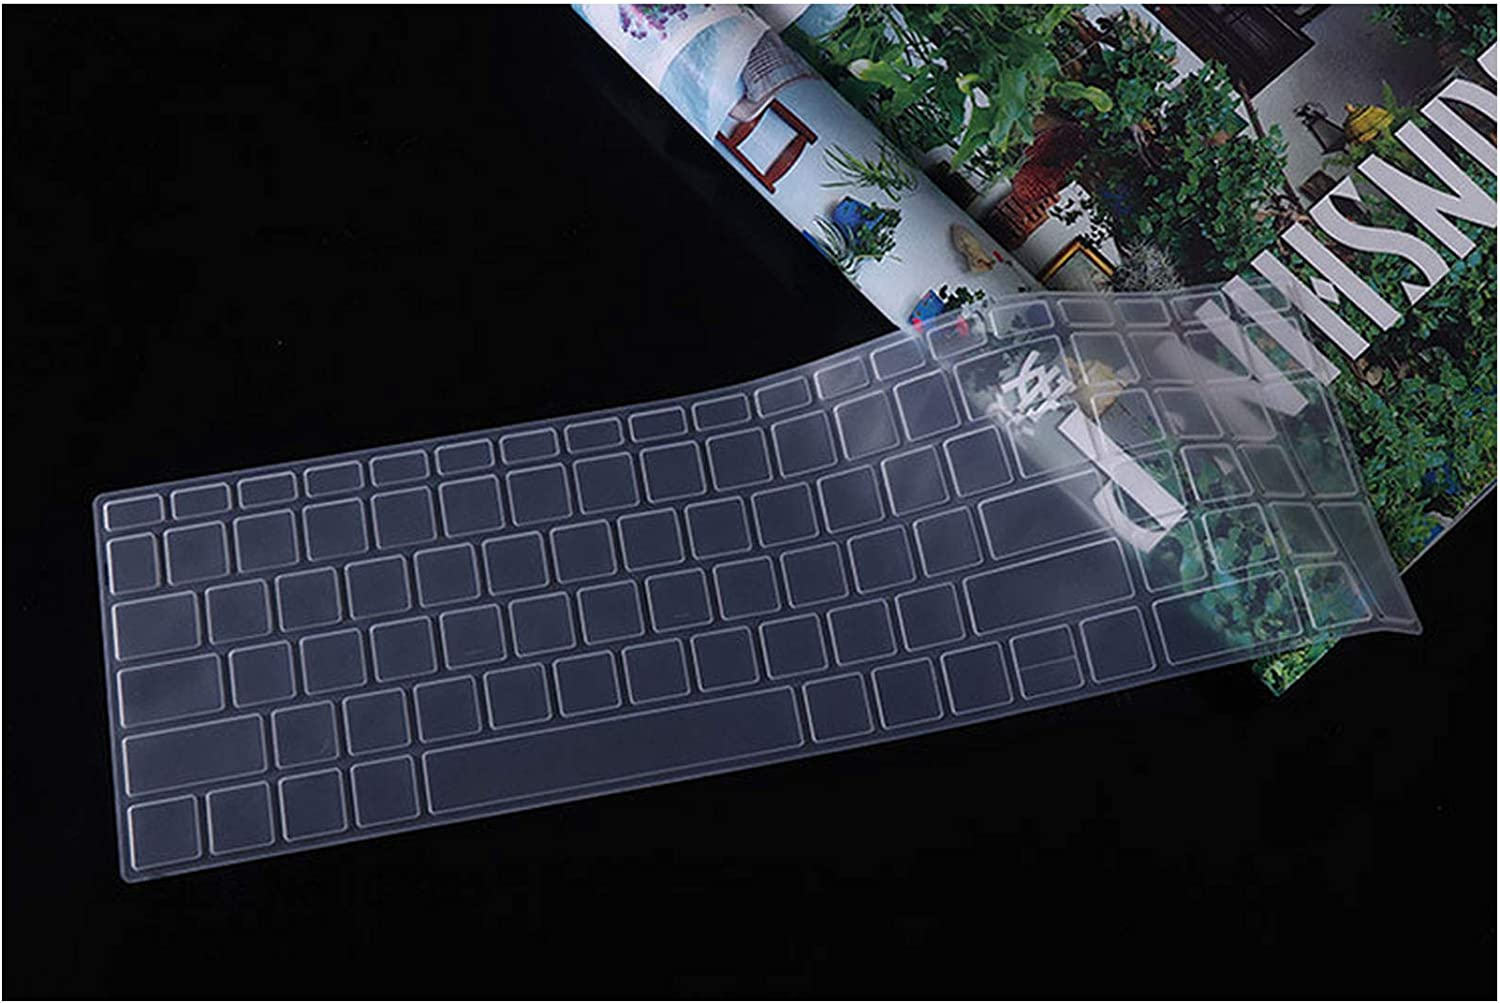 15.6 Inch Laptop Keyboard Cover Protector Skin Compatible for HP 250 G6 256 G6 356 G6 17 X104tx 17Q 17g Br Bu Cr Bs Br TPN I133 W129 17.3,Black